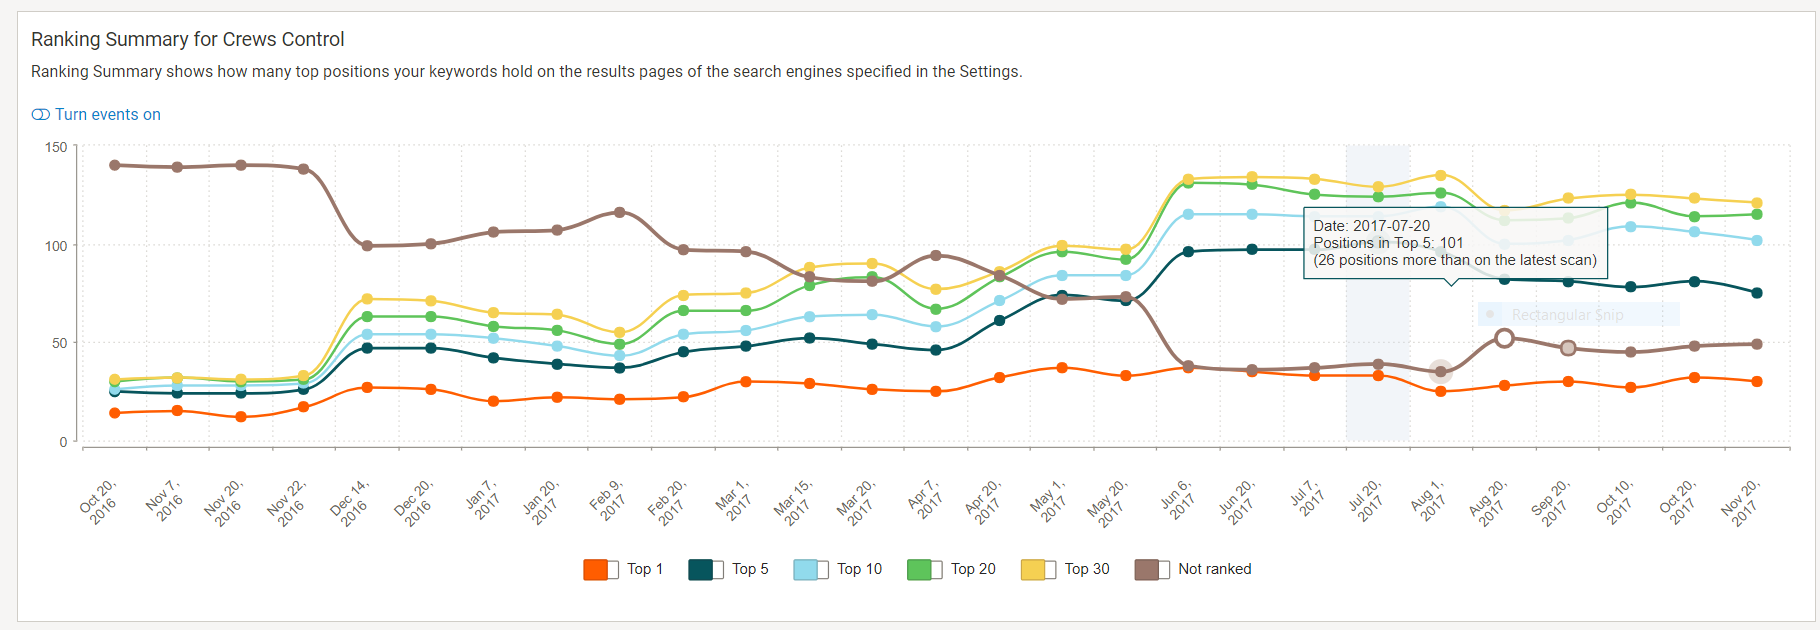 Crews control rankings graph since launch of new website